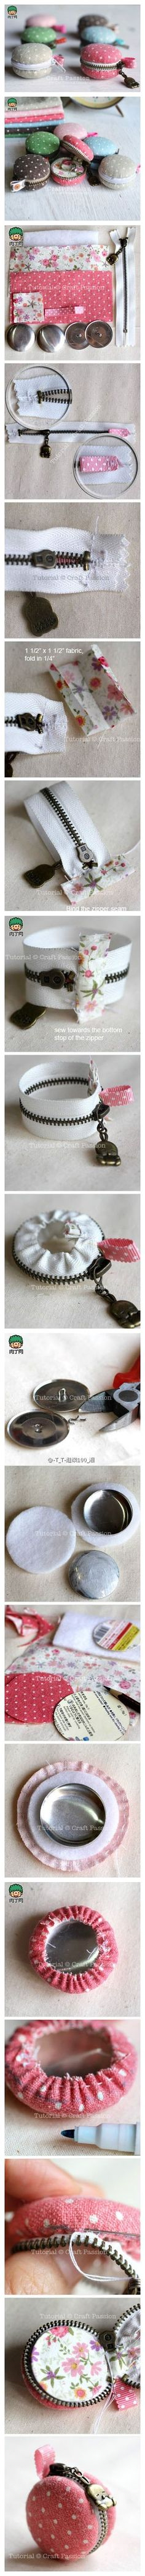 Un tutoriel de porte-monnaie en forme de macaron --- DIY Macaron Coin Purse-wow people are just so creative! Sewing Hacks, Sewing Tutorials, Sewing Patterns, Cute Crafts, Kids Crafts, Arts And Crafts, Fabric Crafts, Sewing Crafts, Sewing Projects